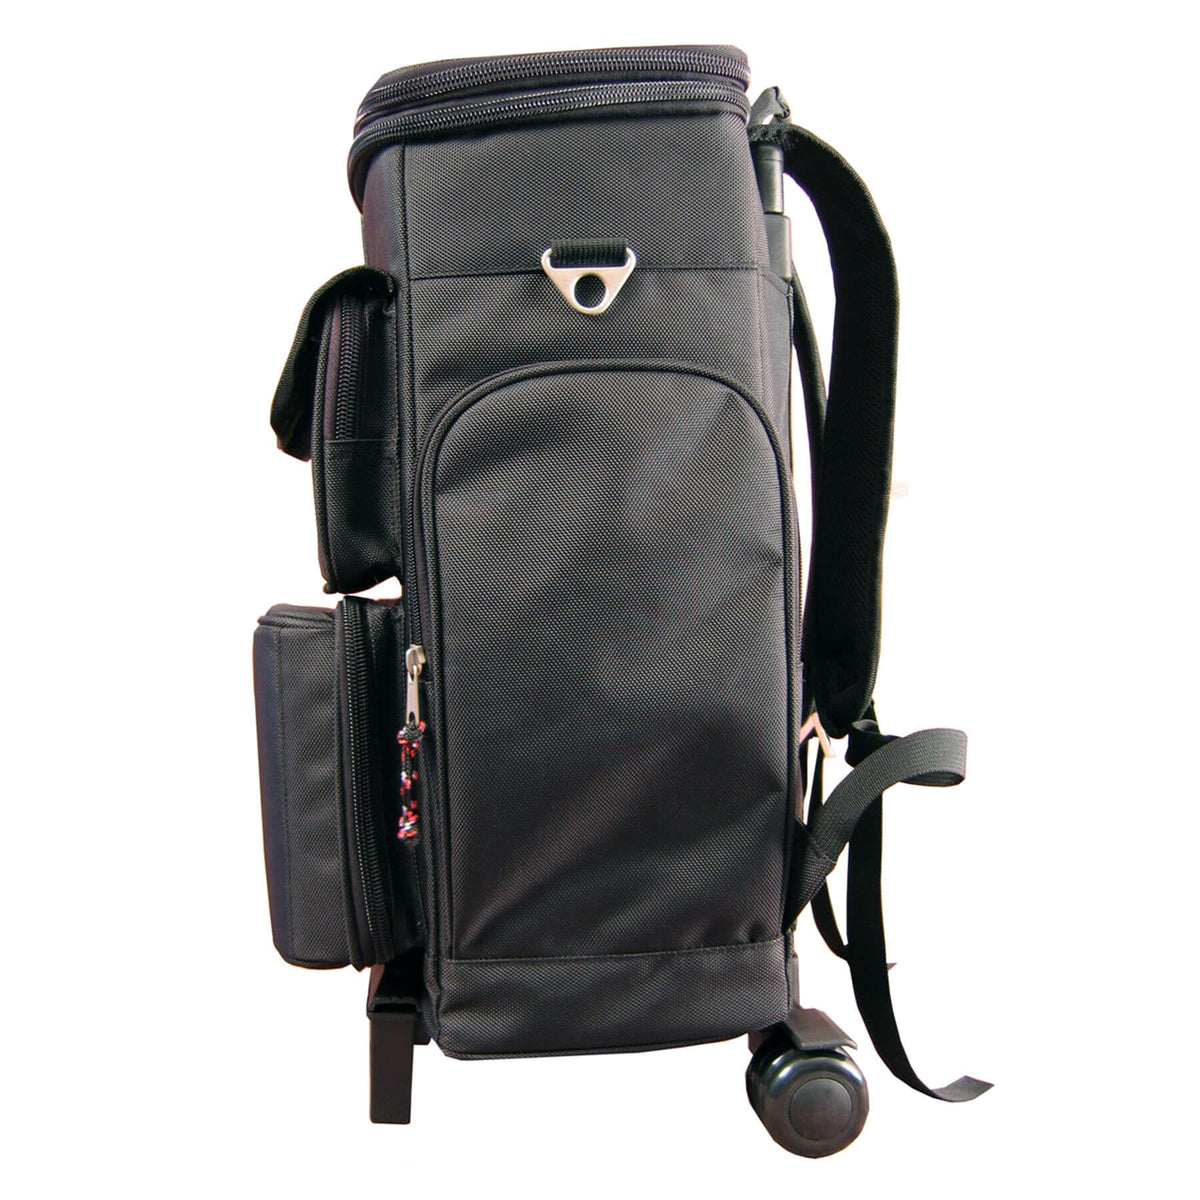 Gator Cases Gear & Laptop Backpack fits Digitech GNX3, GNX4, RP1000, RP500